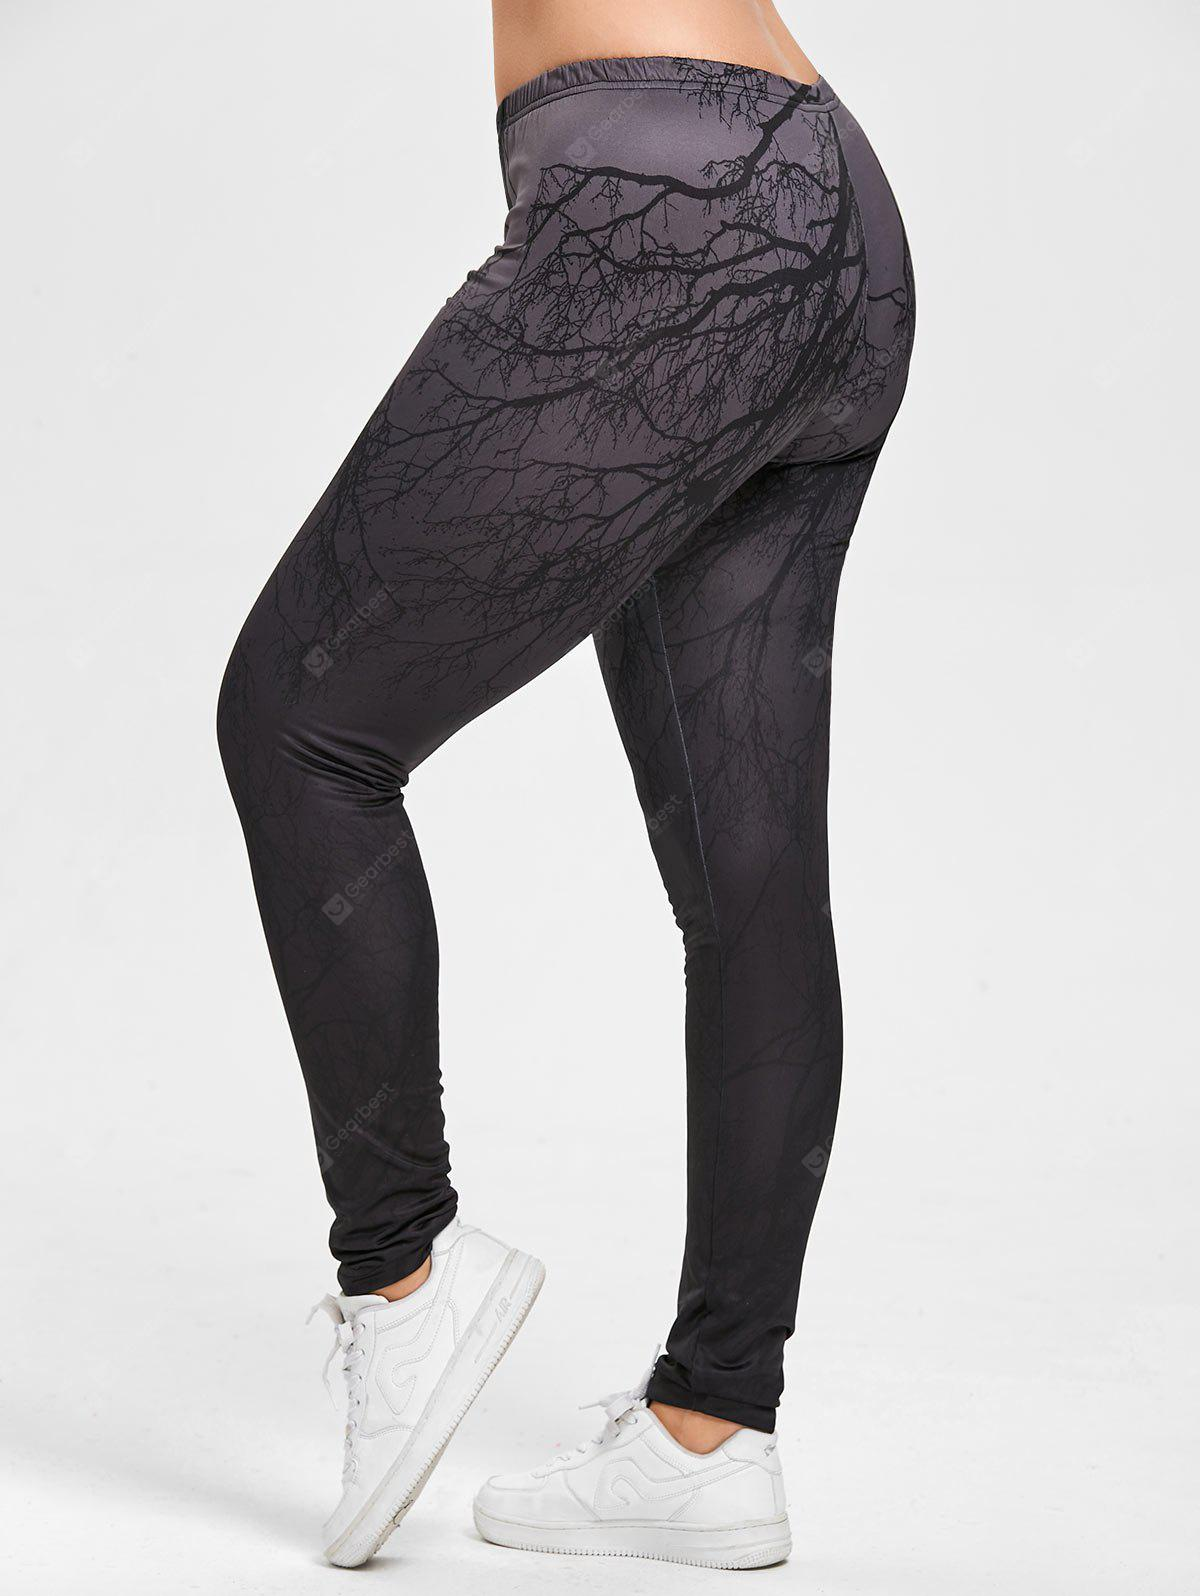 Halloween Branches Ombre Stampa Leggings Dimensione